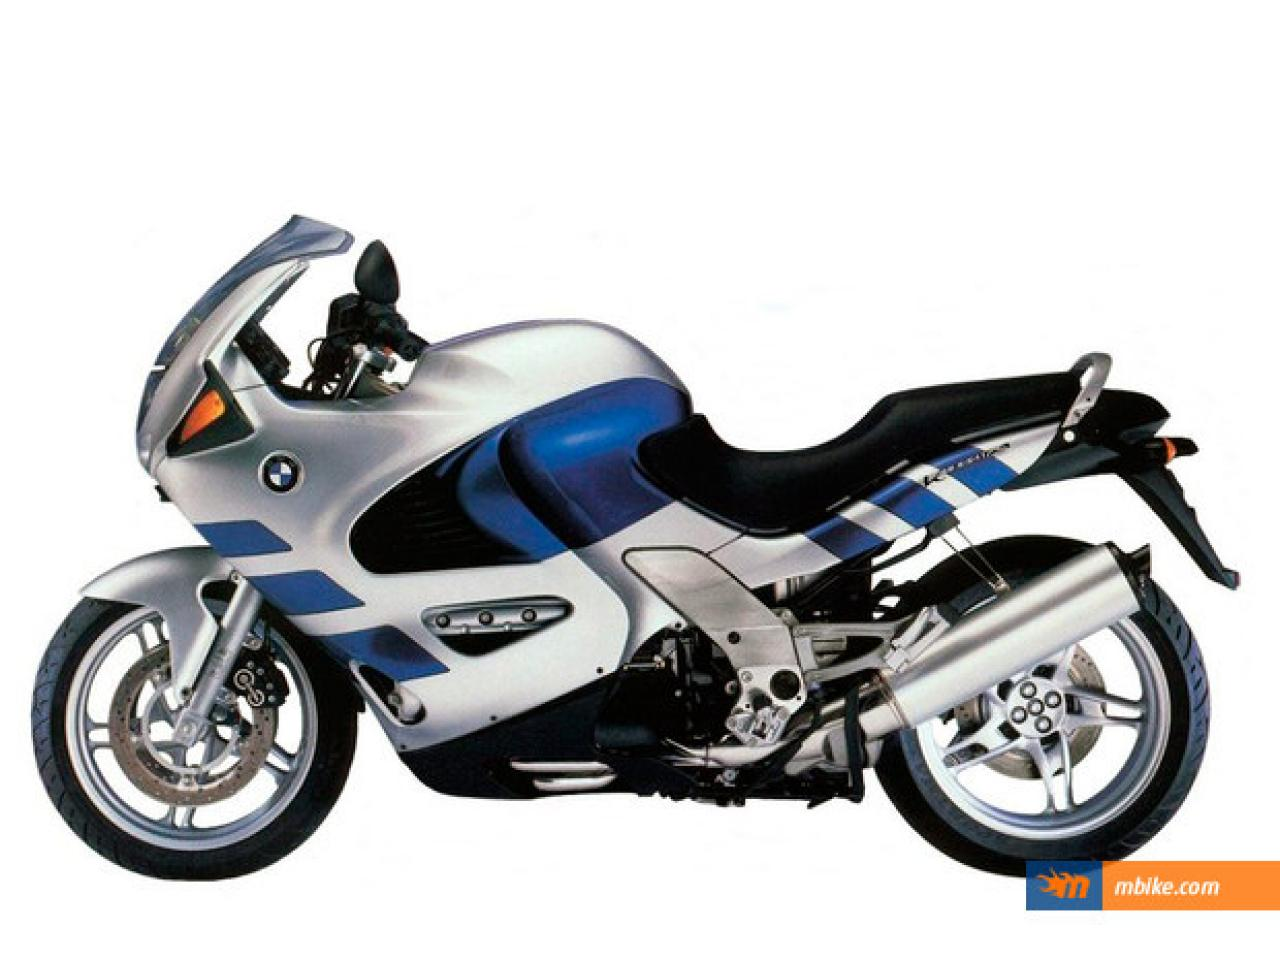 BMW K1200RS 1999 images #43958